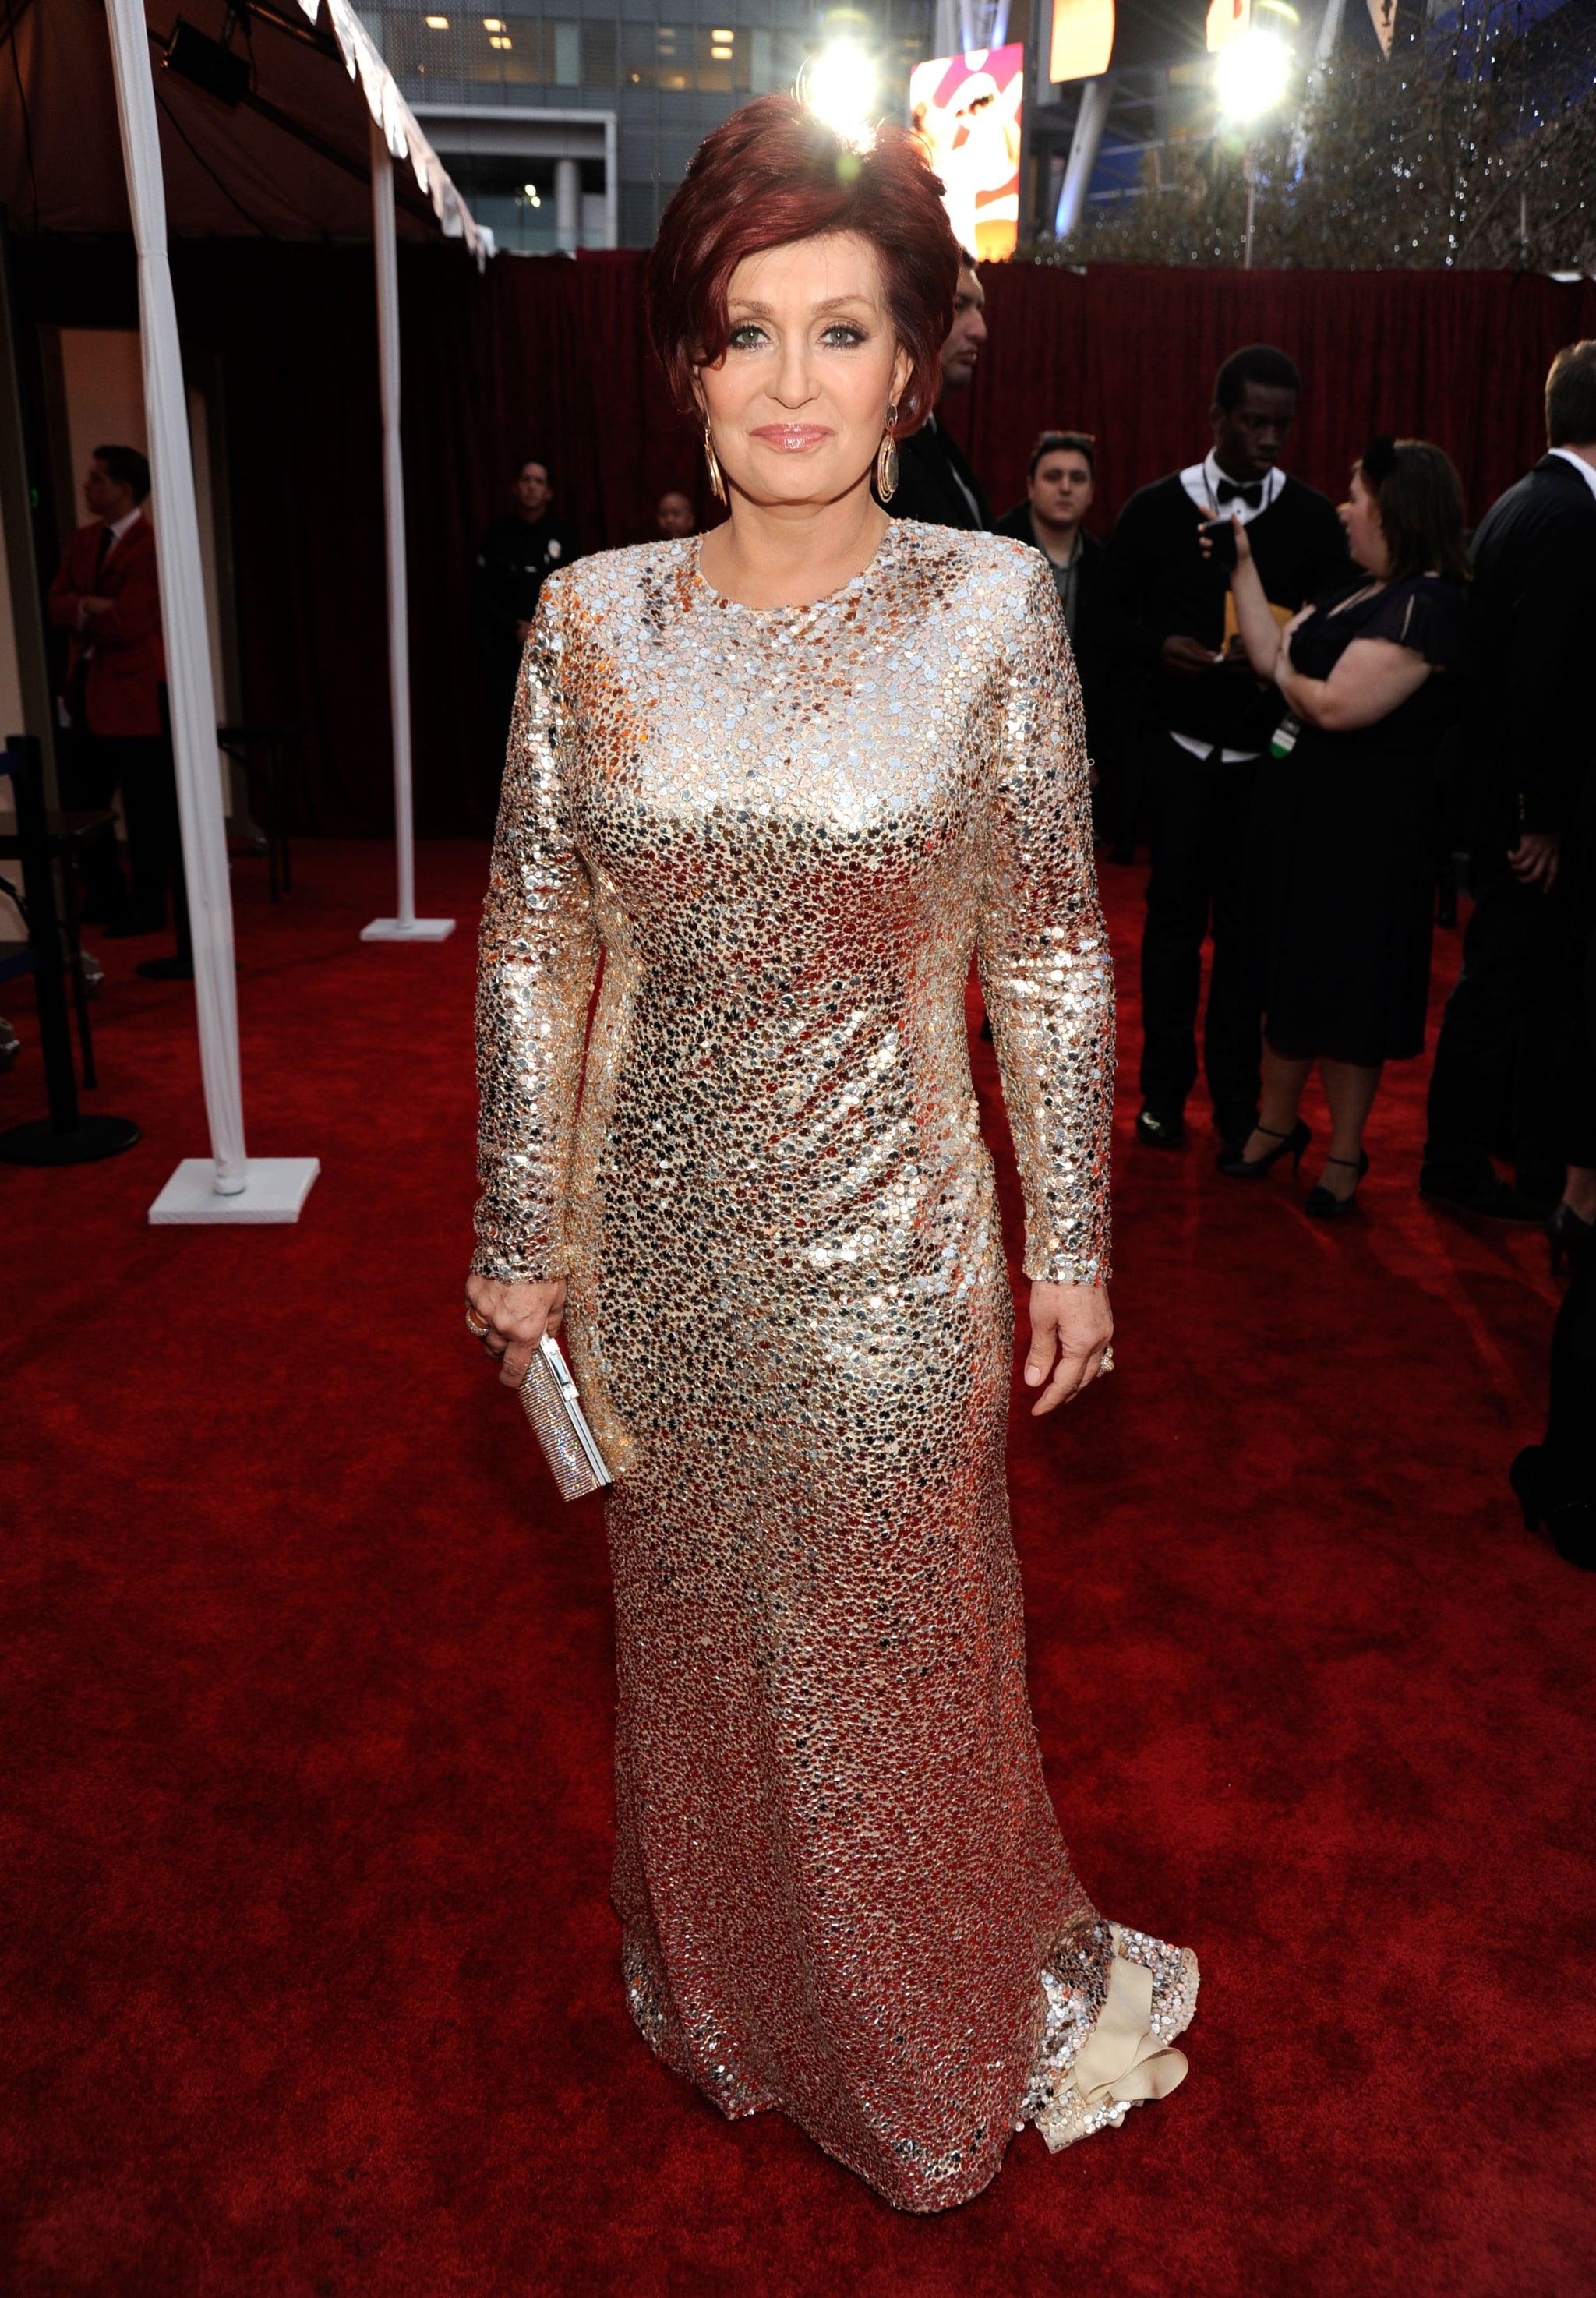 Sharon Osbourne at the People's Choice Awards.